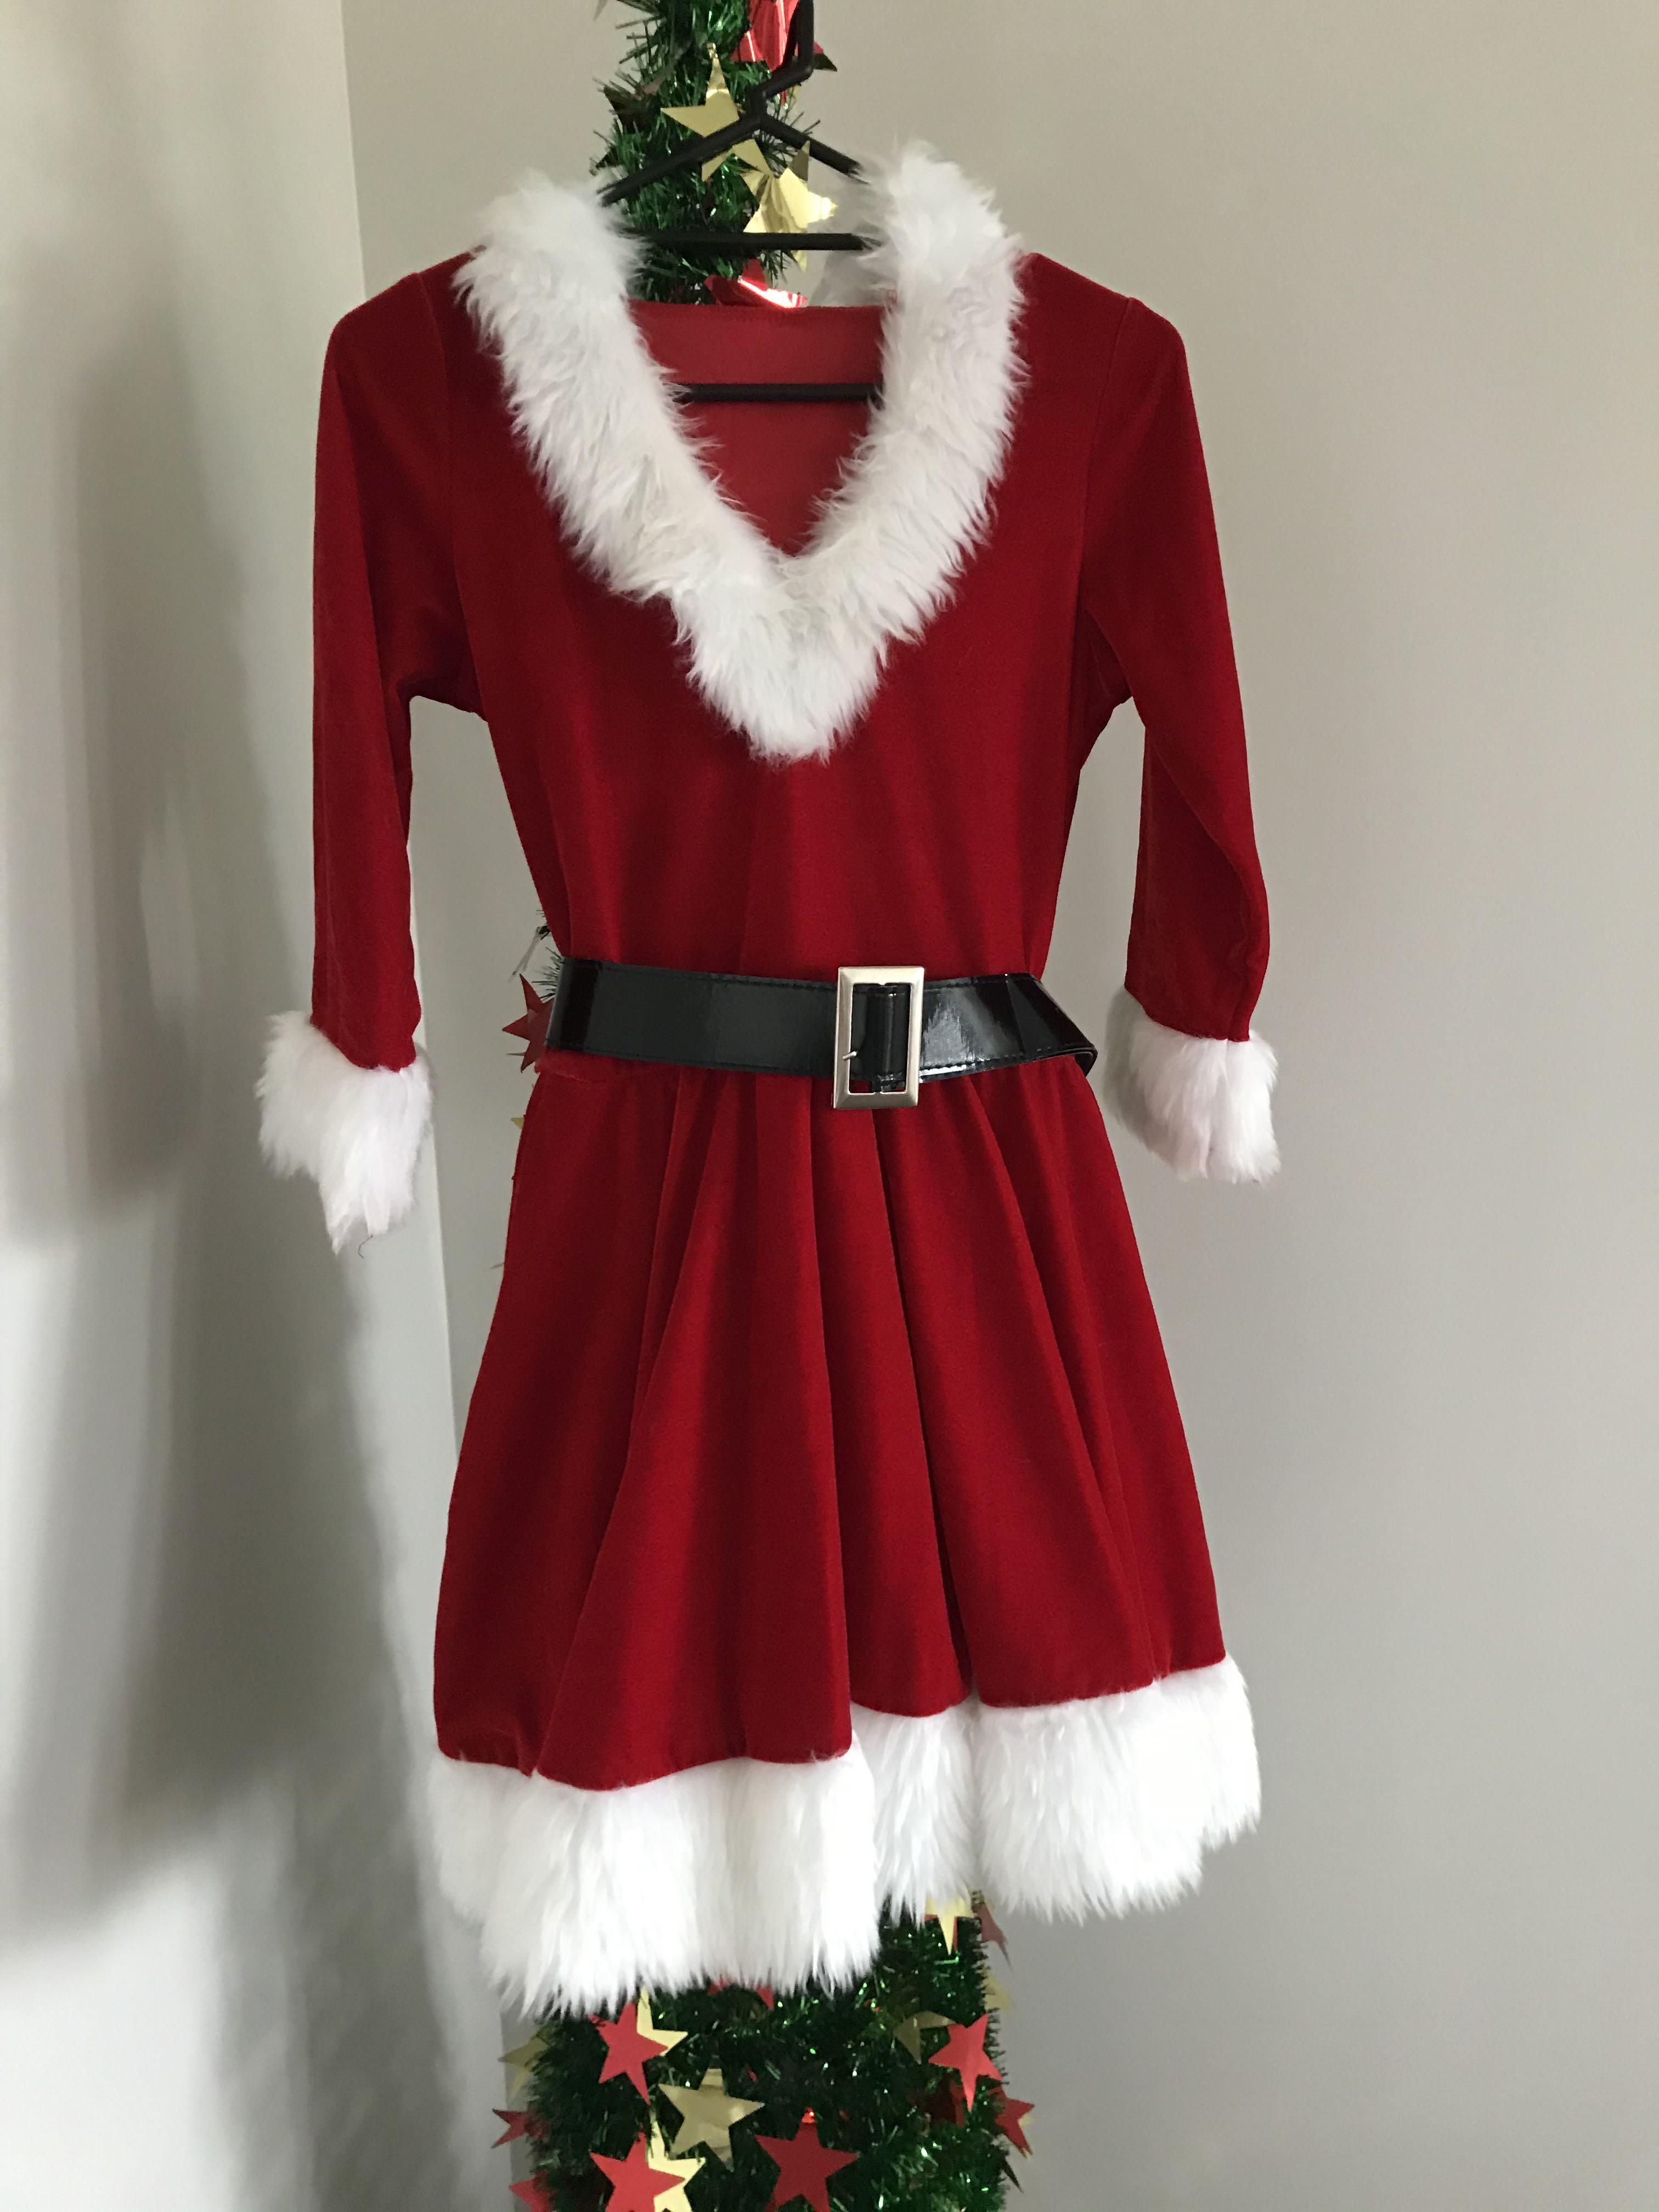 Hooded Mrs Claus dress (high quality) size 8-10